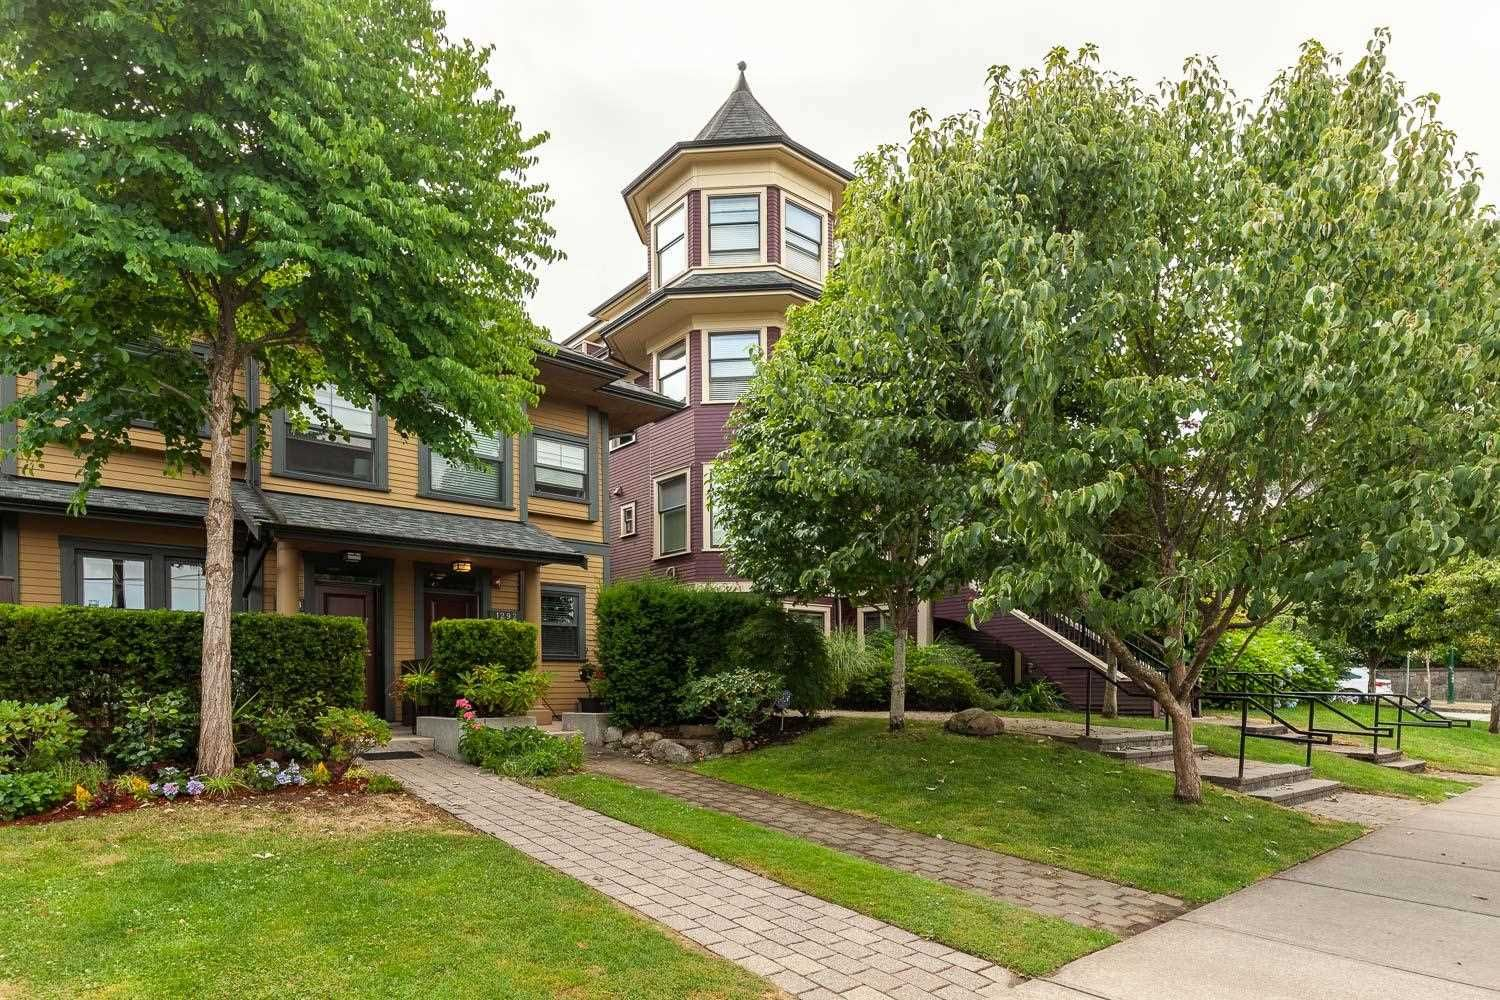 Main Photo: 1288 SALSBURY DRIVE in Vancouver: Grandview Woodland Townhouse for sale (Vancouver East)  : MLS®# R2599925